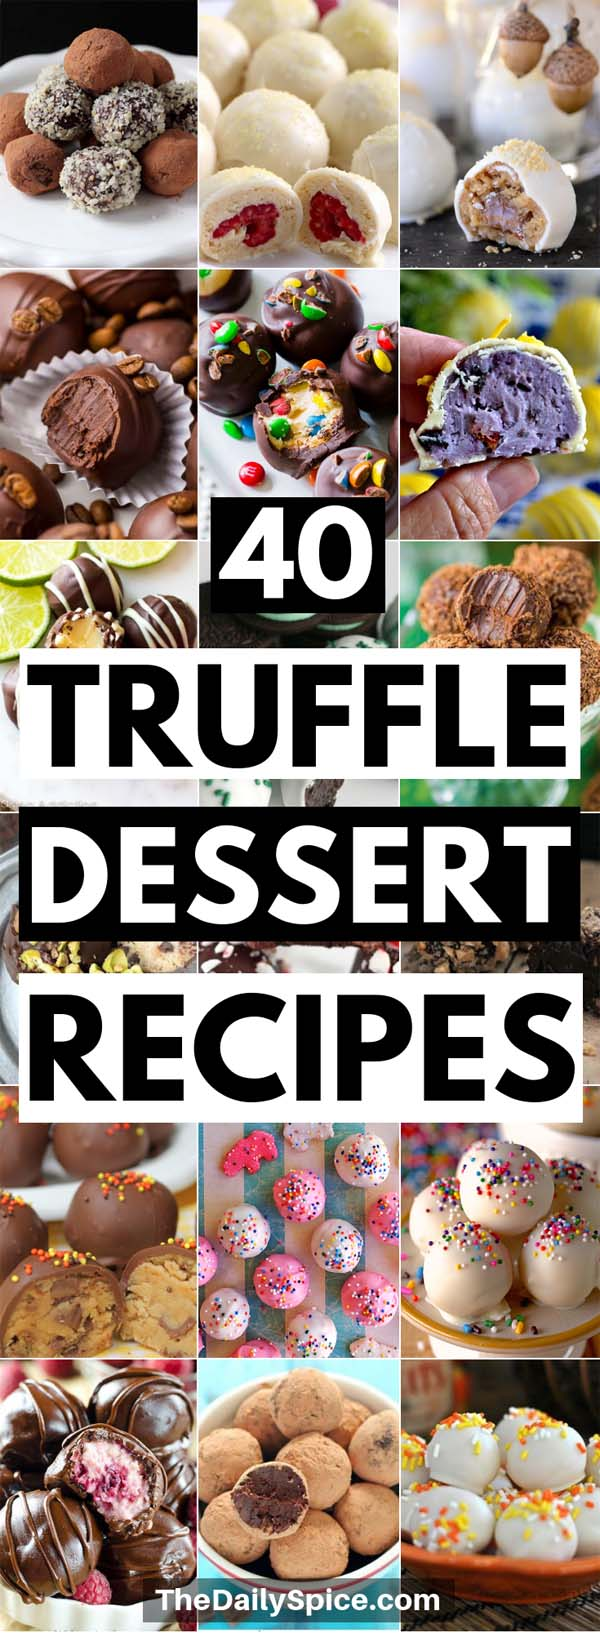 Truffle Dessert Recipes